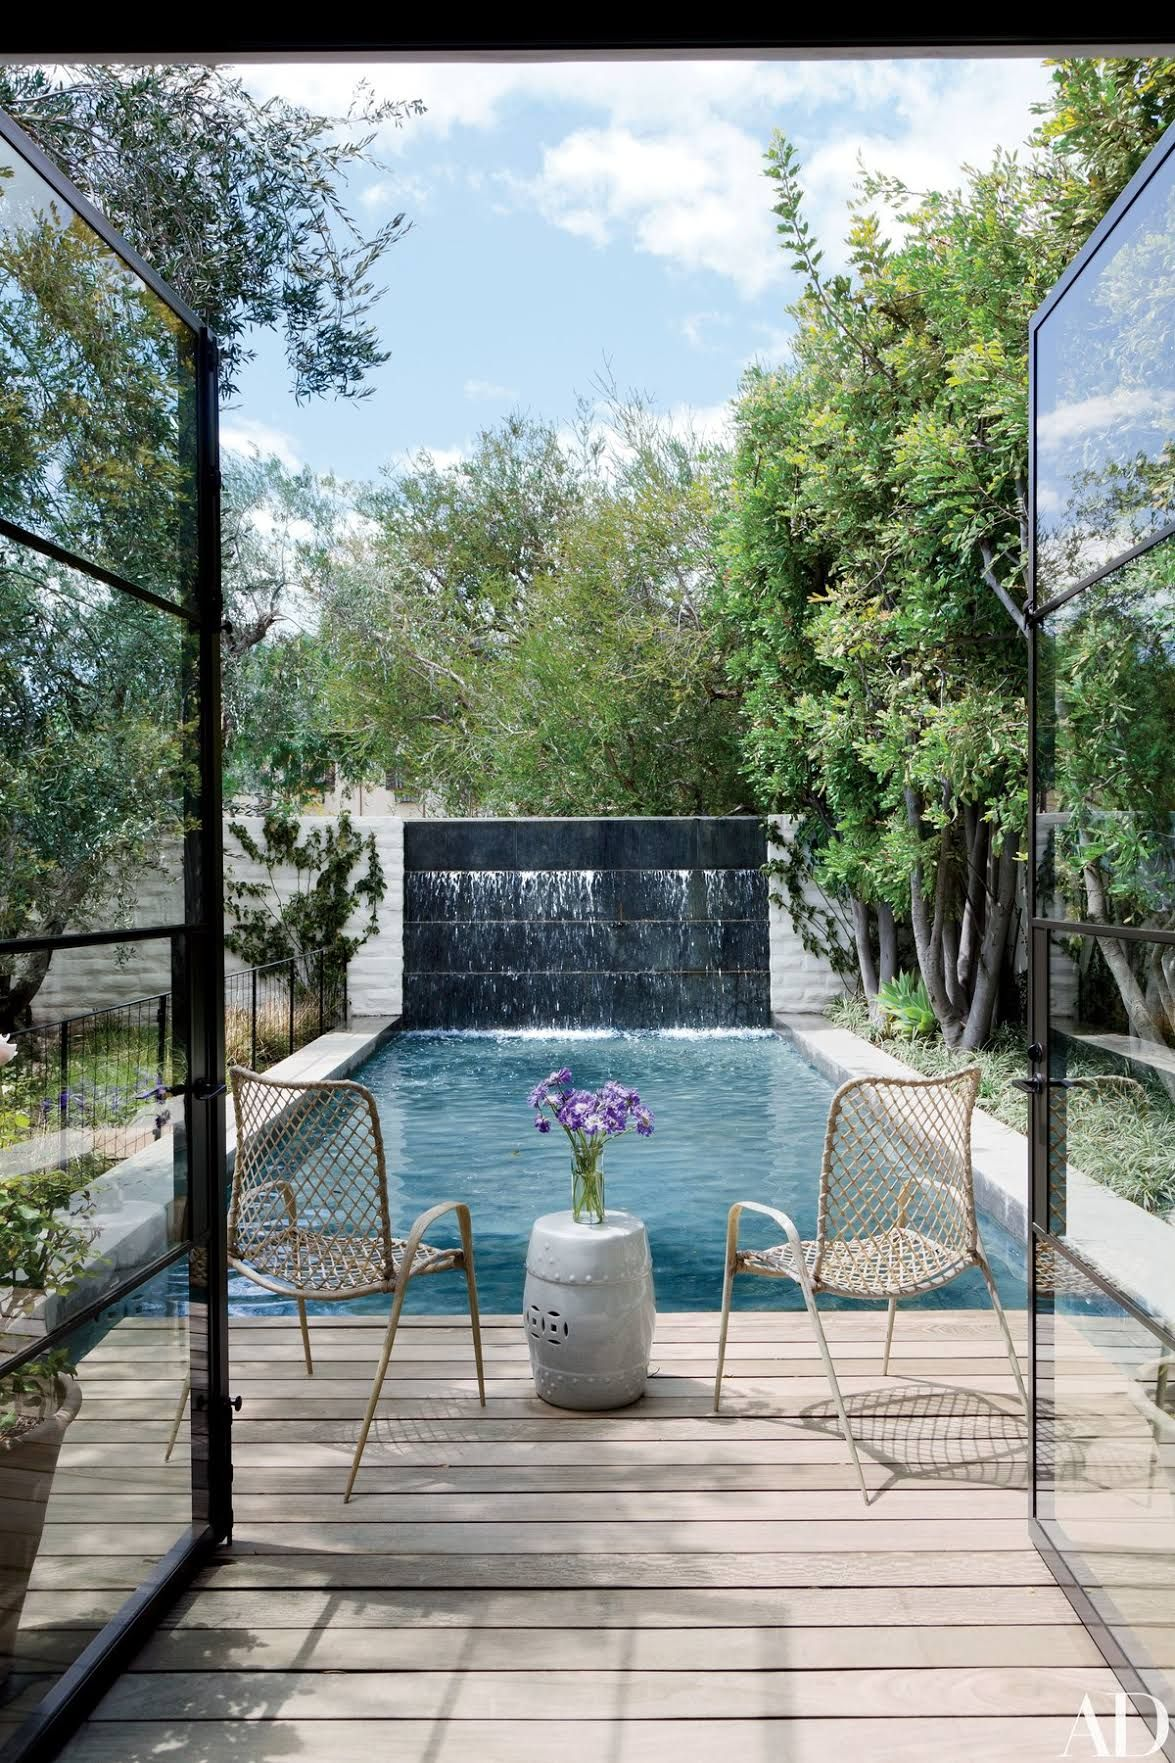 Pool Garten Klein Outside The Room A Small Terrace Overlooks A Reflecting Pool With